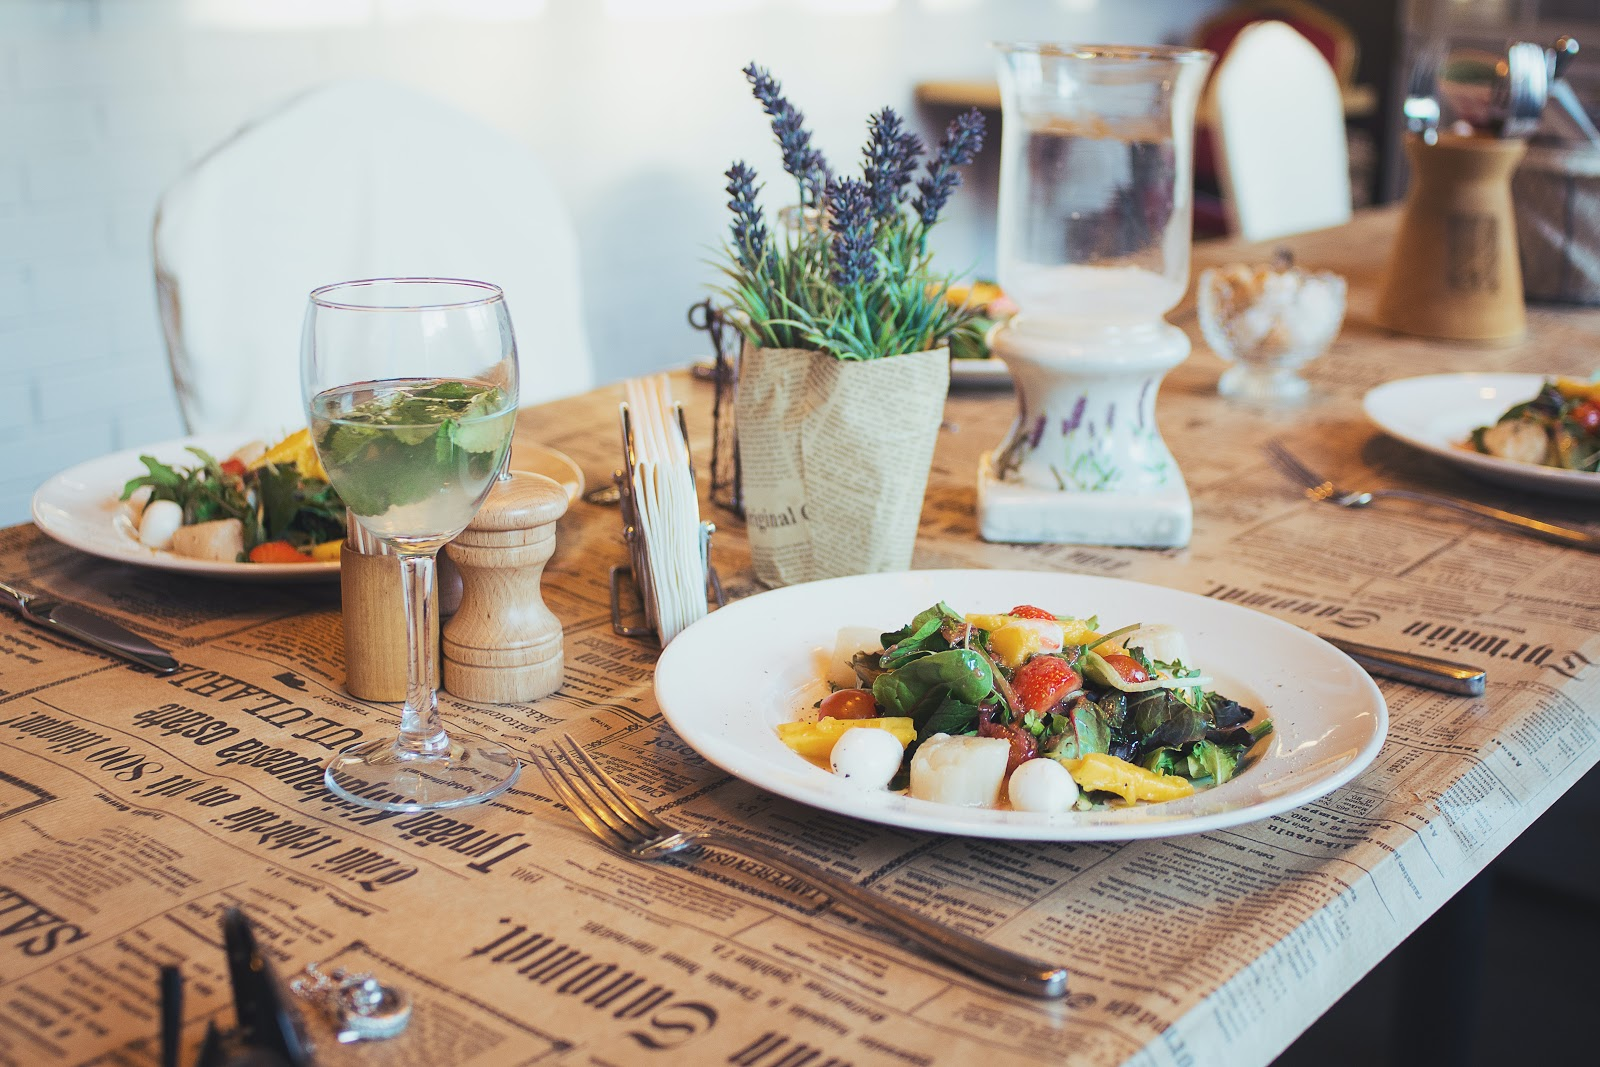 Looking for gluten free food near me? Look no further than your kitchen for make gluten free food and start eating healthy!